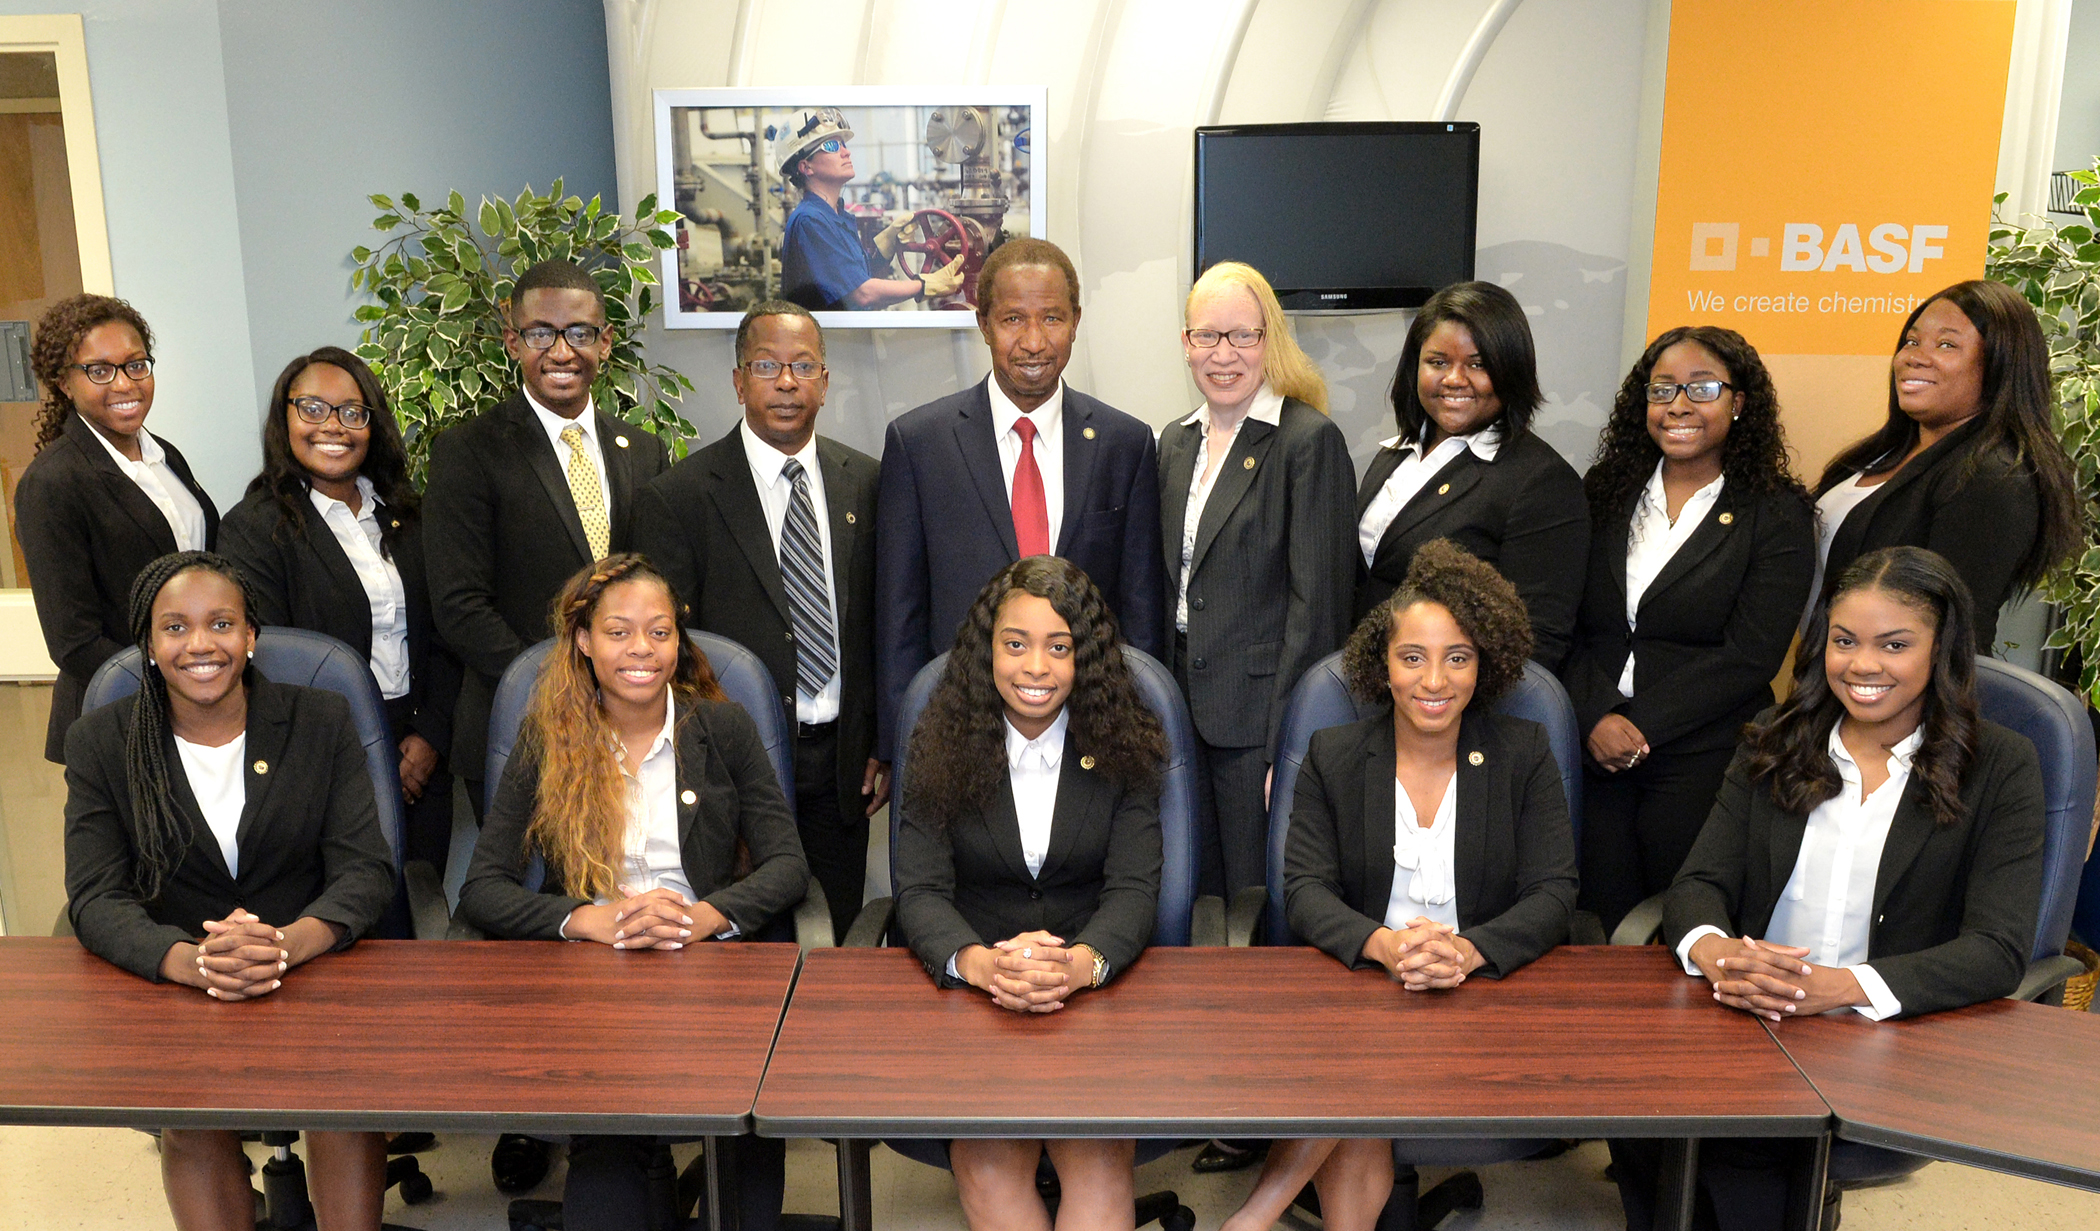 SU scholars and representatives recently attended the Thurgood Marshall College Fund Leadership Institute in Washington, D.C. Pictured: (left to right - seated) - Daria Bentley, Chloe Horton, Jovanie Smith, Ambrosia Williams, and Paige Hall; (left to right - standing) - Rufaro Chirewa, Angela Caston, Anthony Kenney, Eric Pugh (chaperone),  Diola Bagayoko (Honors College Dean/TMCF Campus Coordinator), Tamara Montgomery (Career Services Director/TMCF Liaison), Jasmine Singleton (TMCF Ambassador), Alicia Bulter, and Bolaji Ige. Not Pictured-Justin Alfred and Alex McKee.